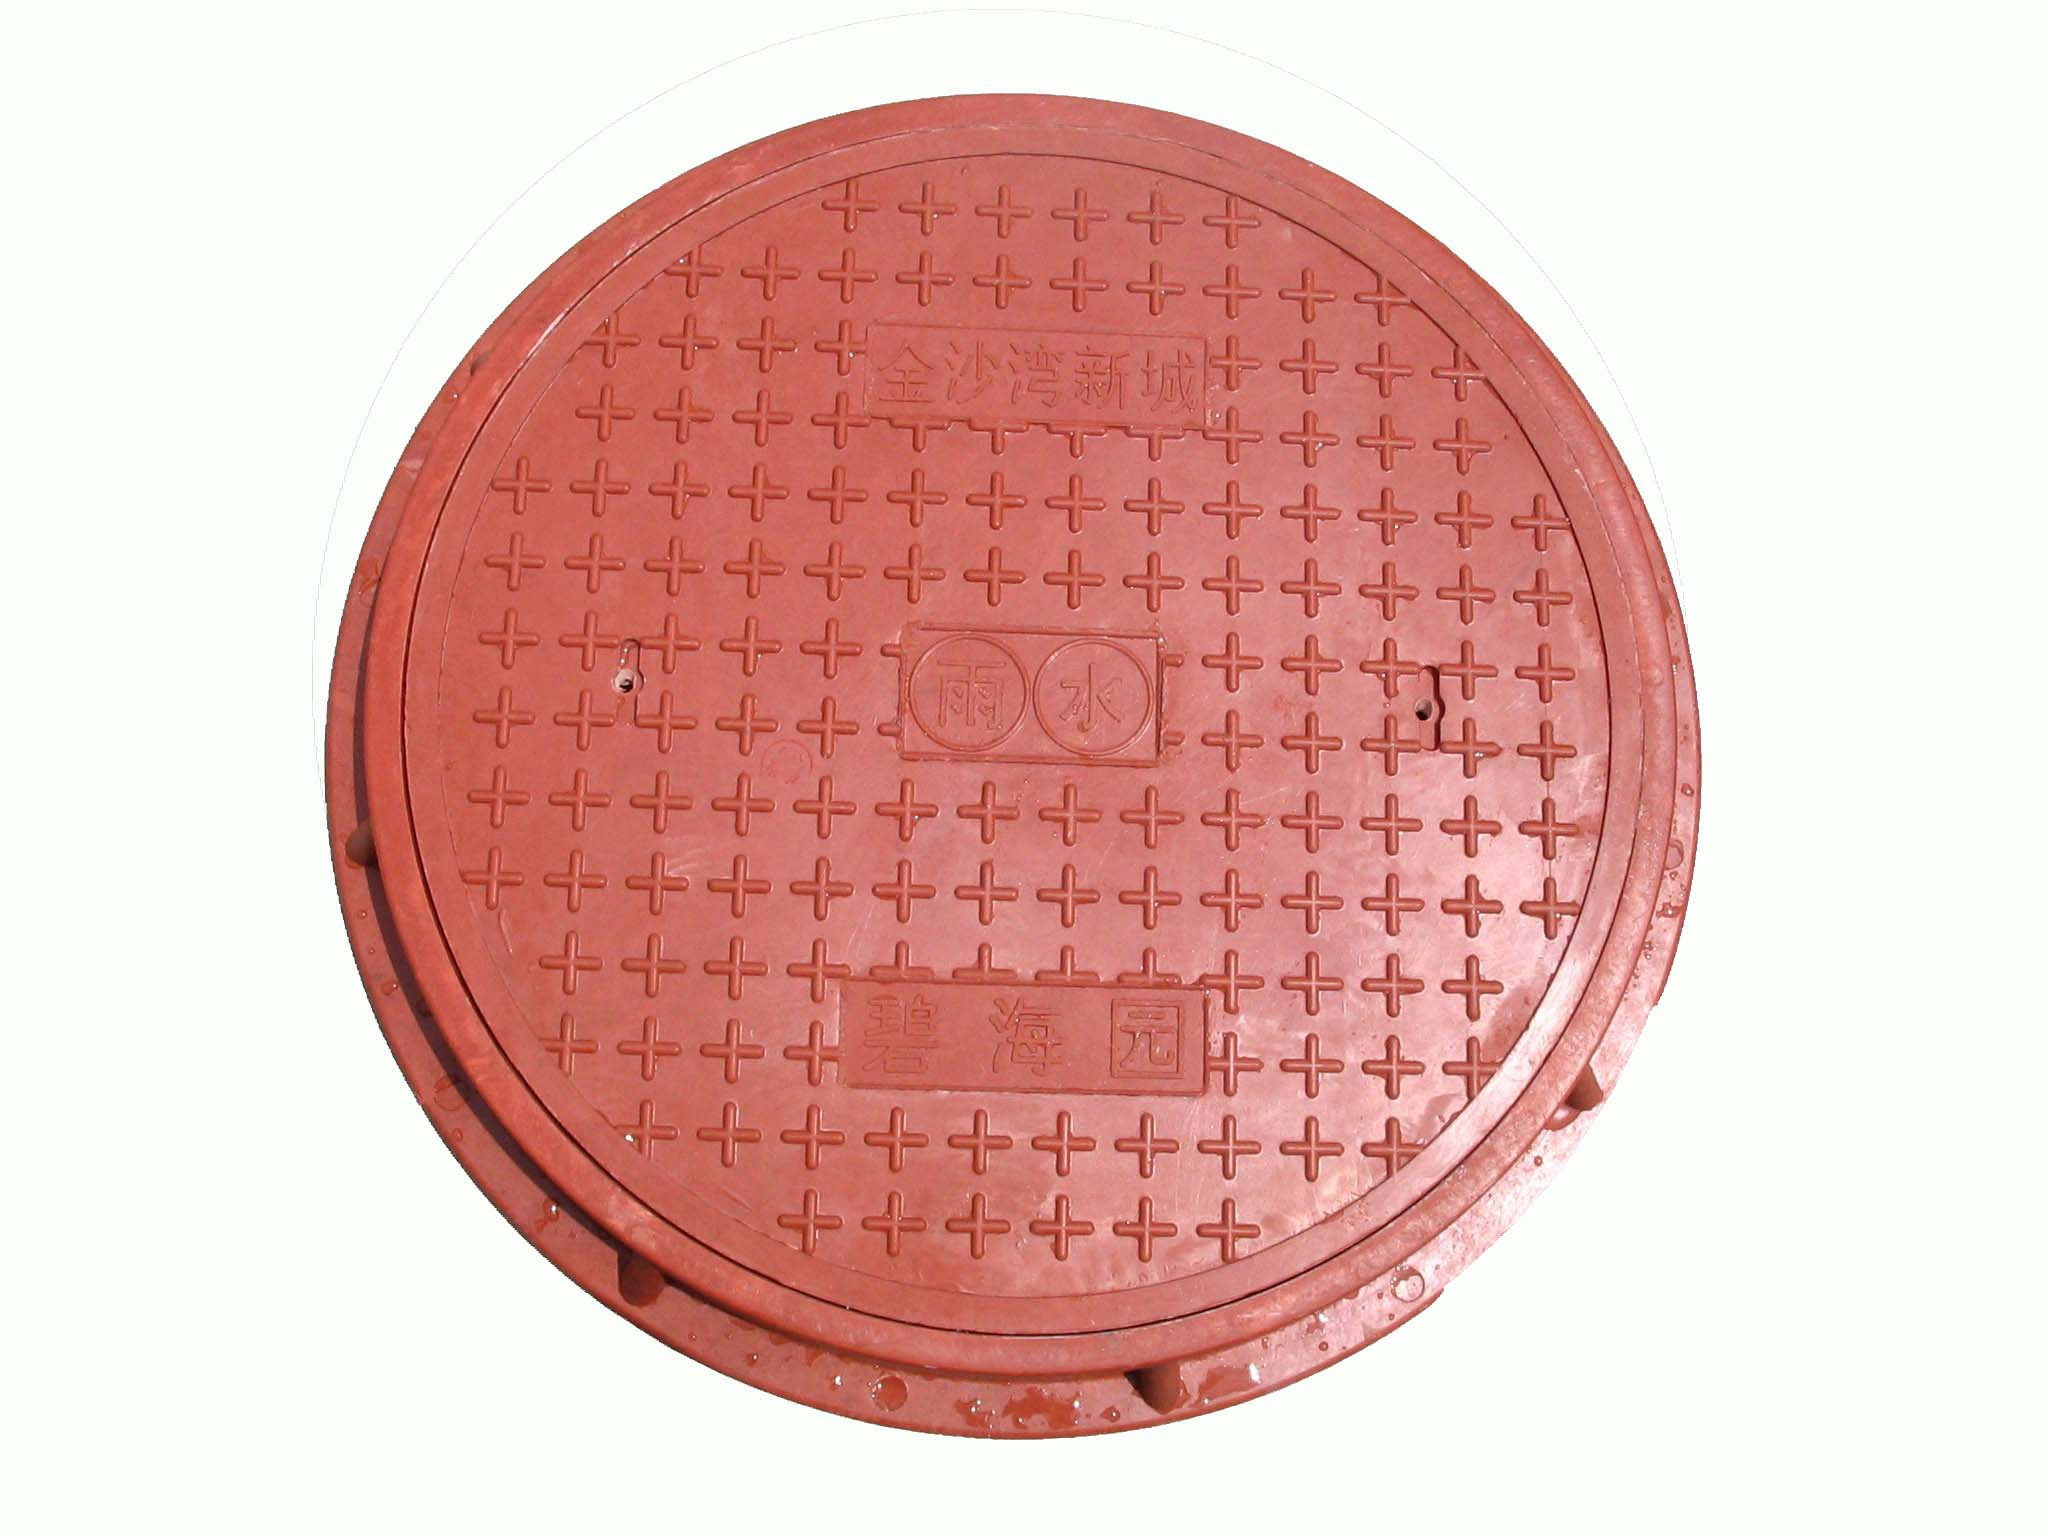 High quality 700-70 mm anti-theft SMC round manhole cover with CE